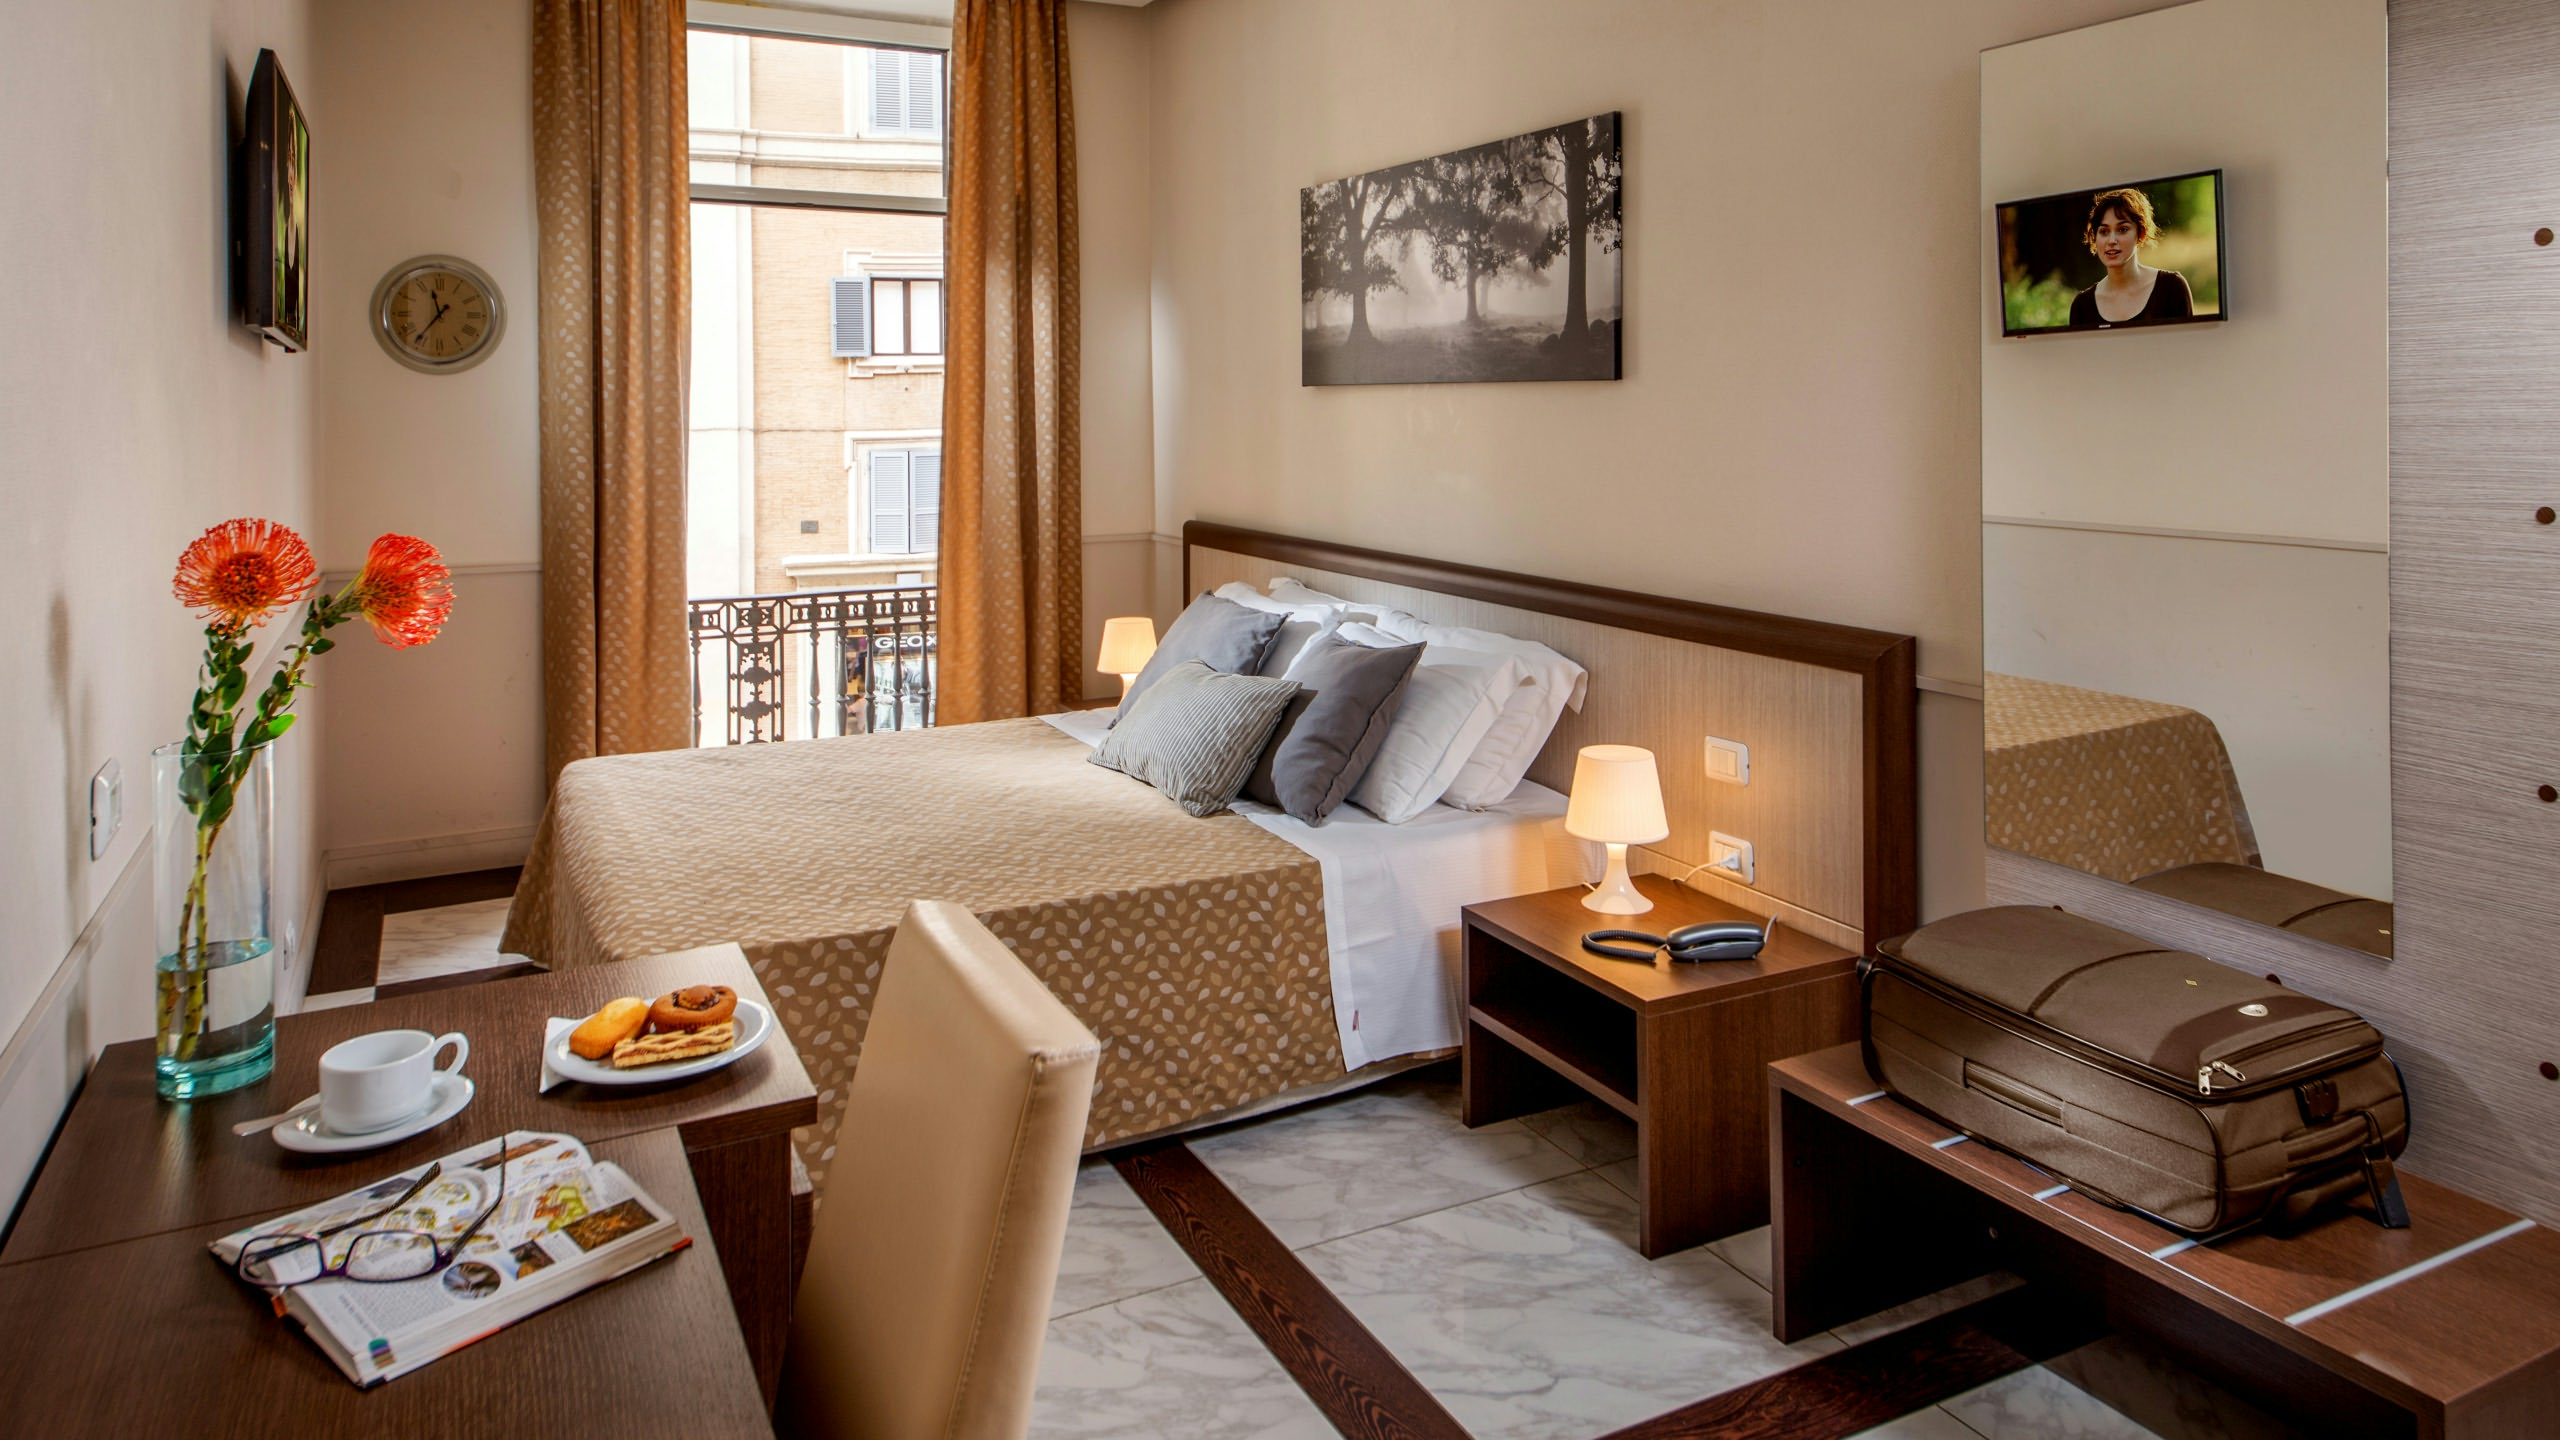 Course Grand Suites Rome - Modern and elegant rooms in central Rome